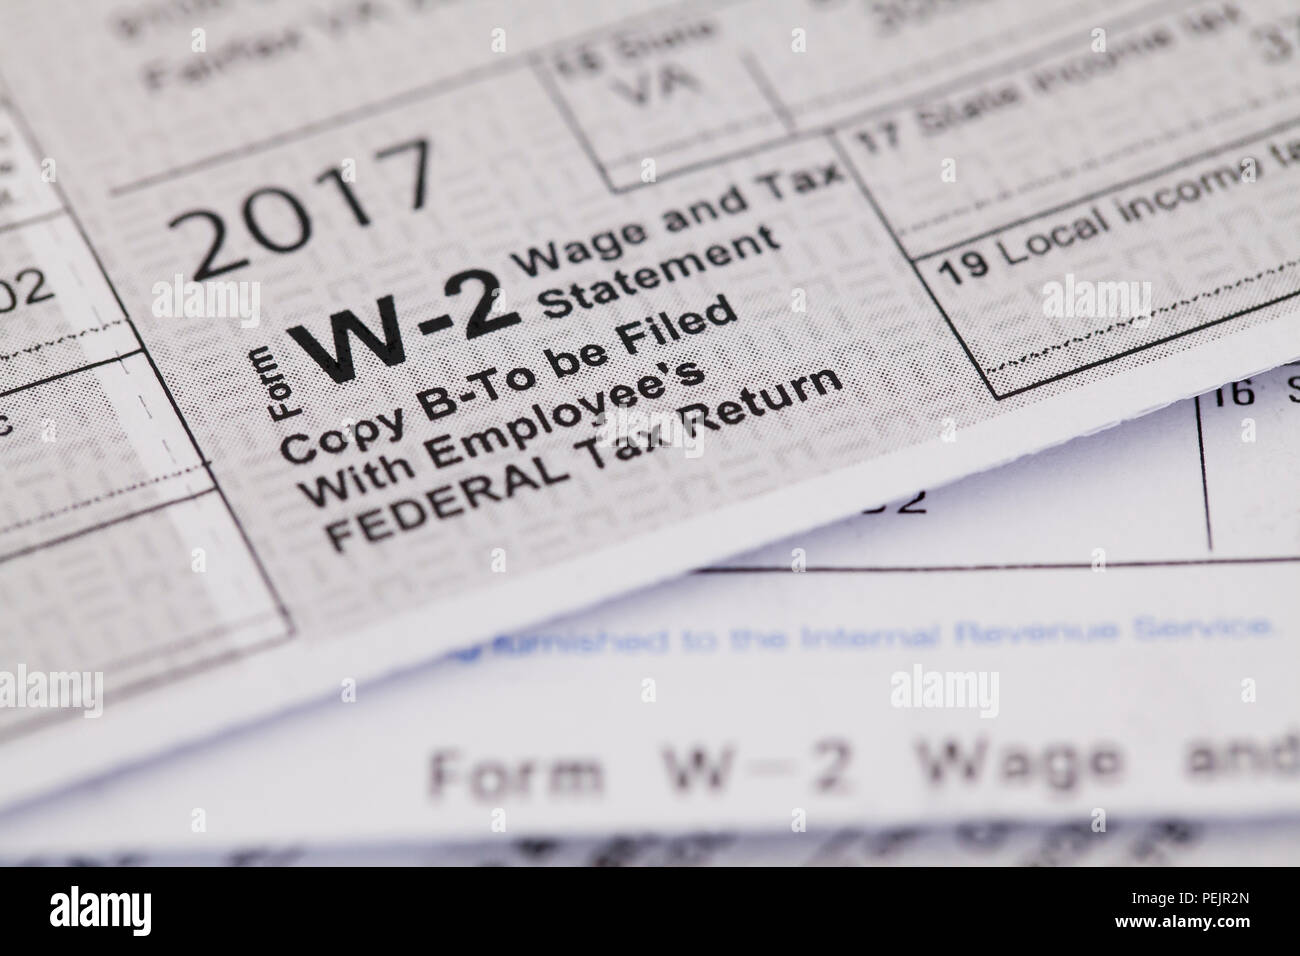 2017 W-2, Federal Wage and Tax, statement - USA - Stock Image